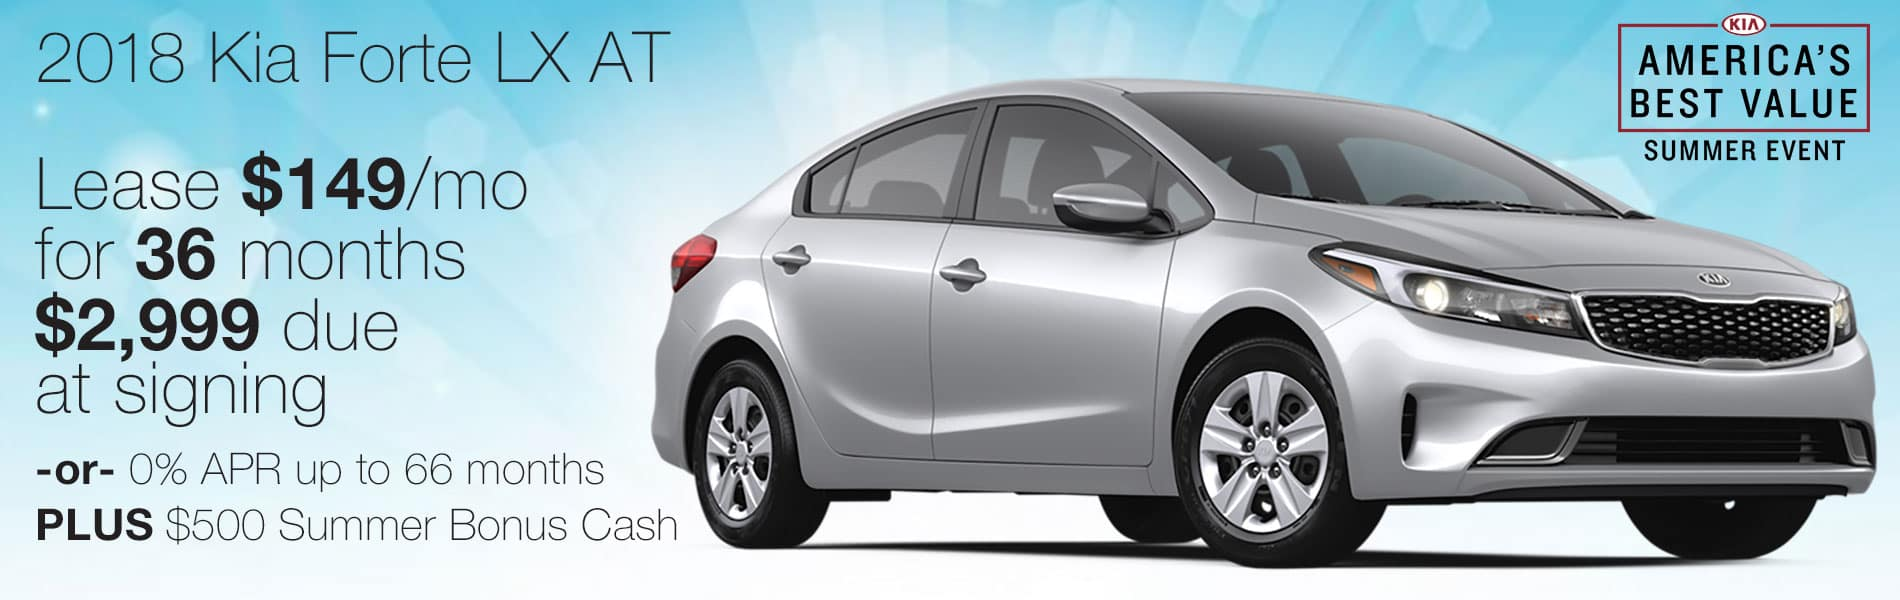 Lease an Forte LX for $149 per month with just $2,999 due at signing or 0% APR up to 66 months plus $500 Summer Bonus Cash